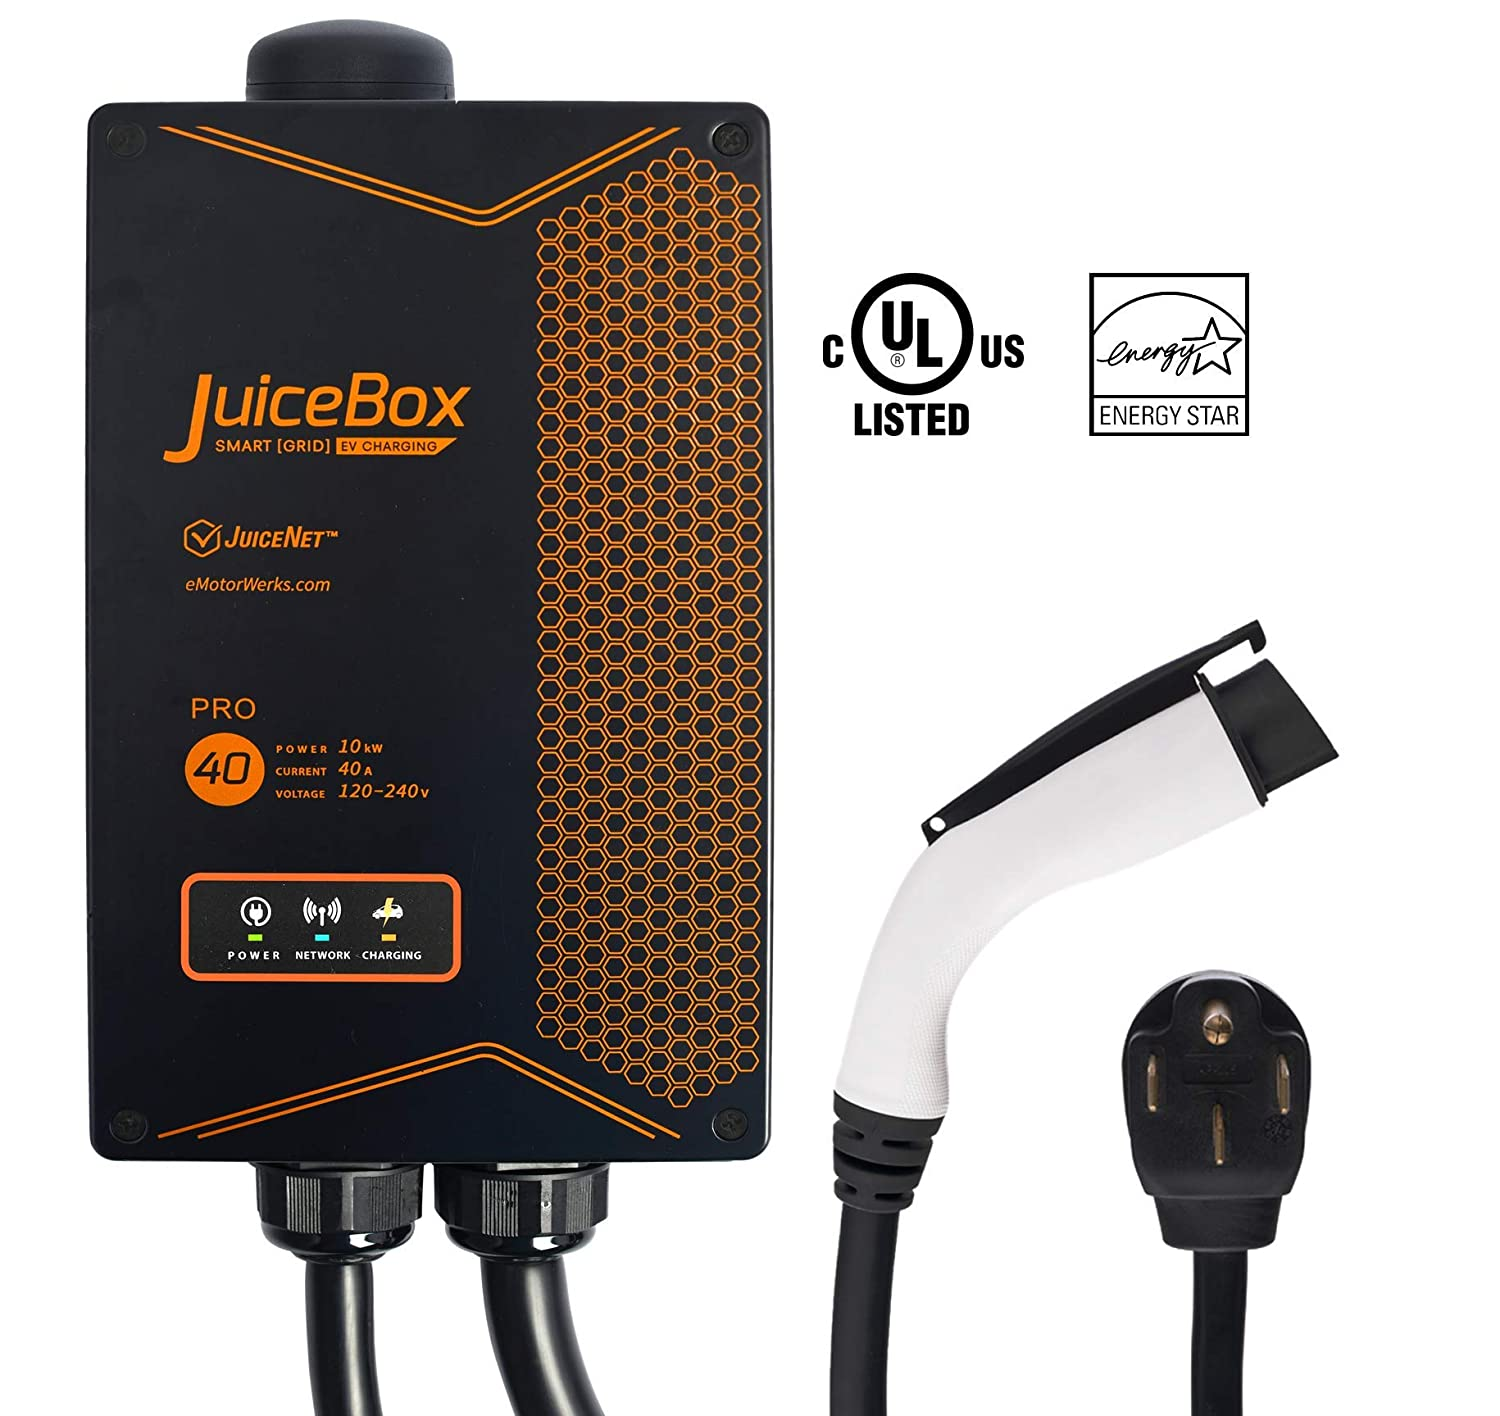 Buy JuiceBox 40A Plug-in Electric Vehicle L2 Home Charging Station with 24-foot cable and NEMA 14-50 plug